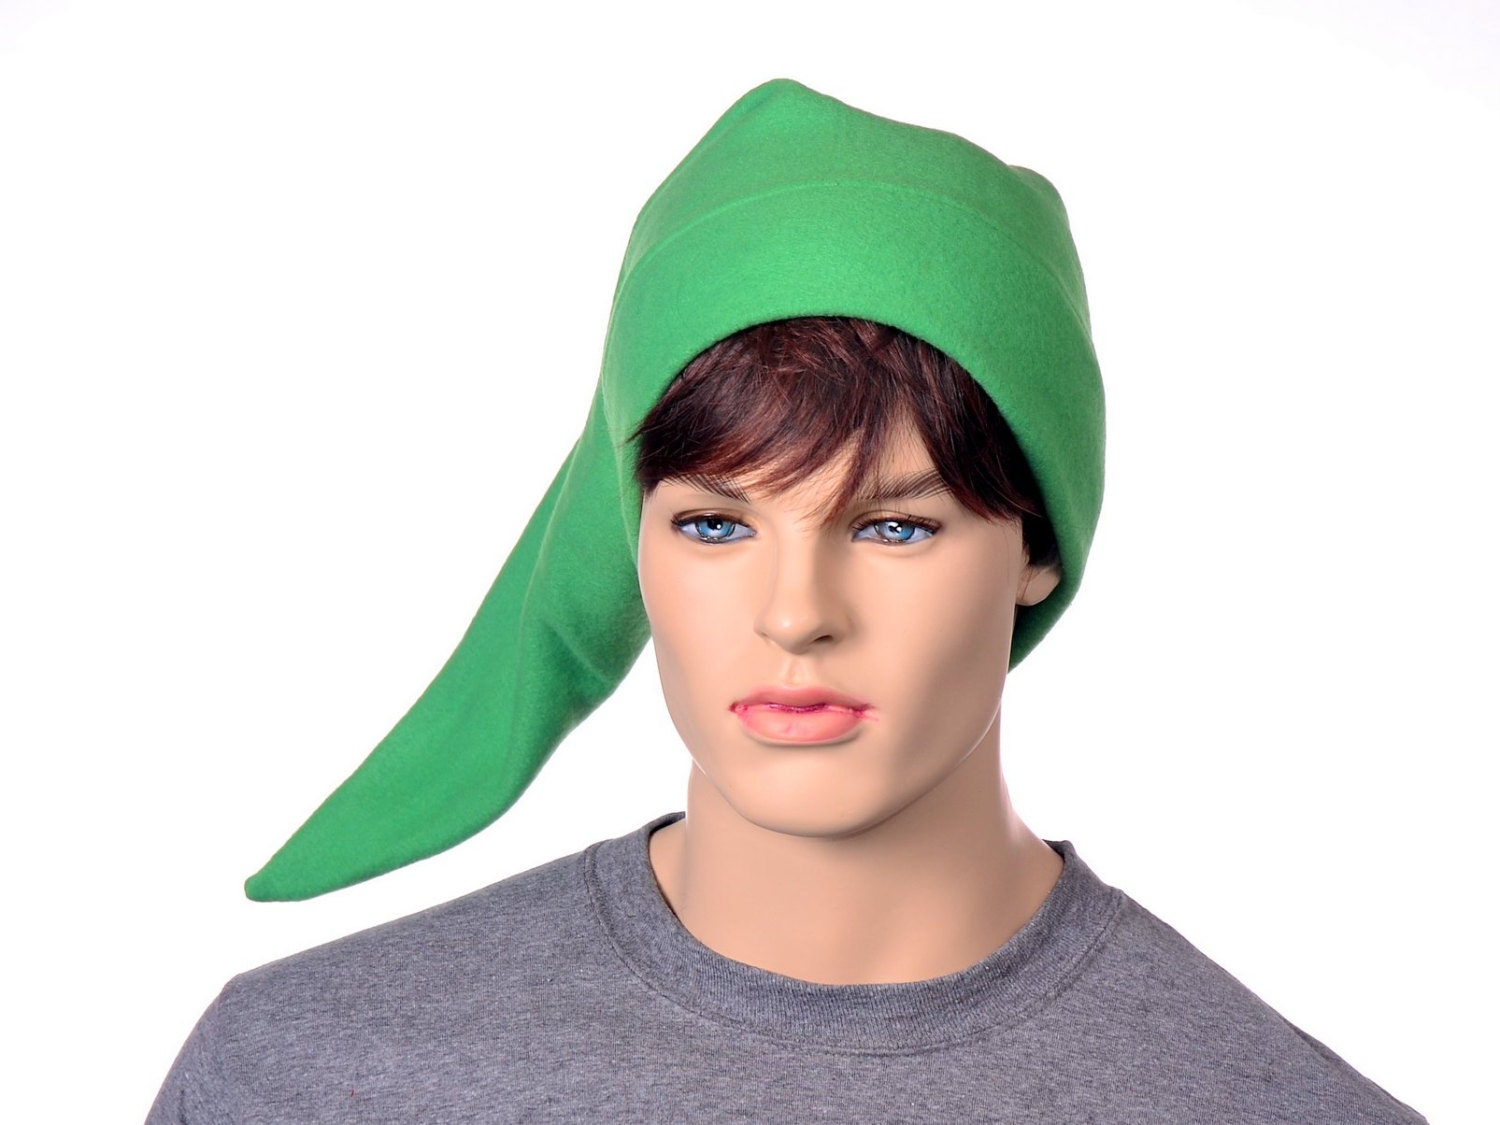 f6e56950 Green Pointed Elf Hat Green Long Pointed Cap Elvish Hero Pointed Cap